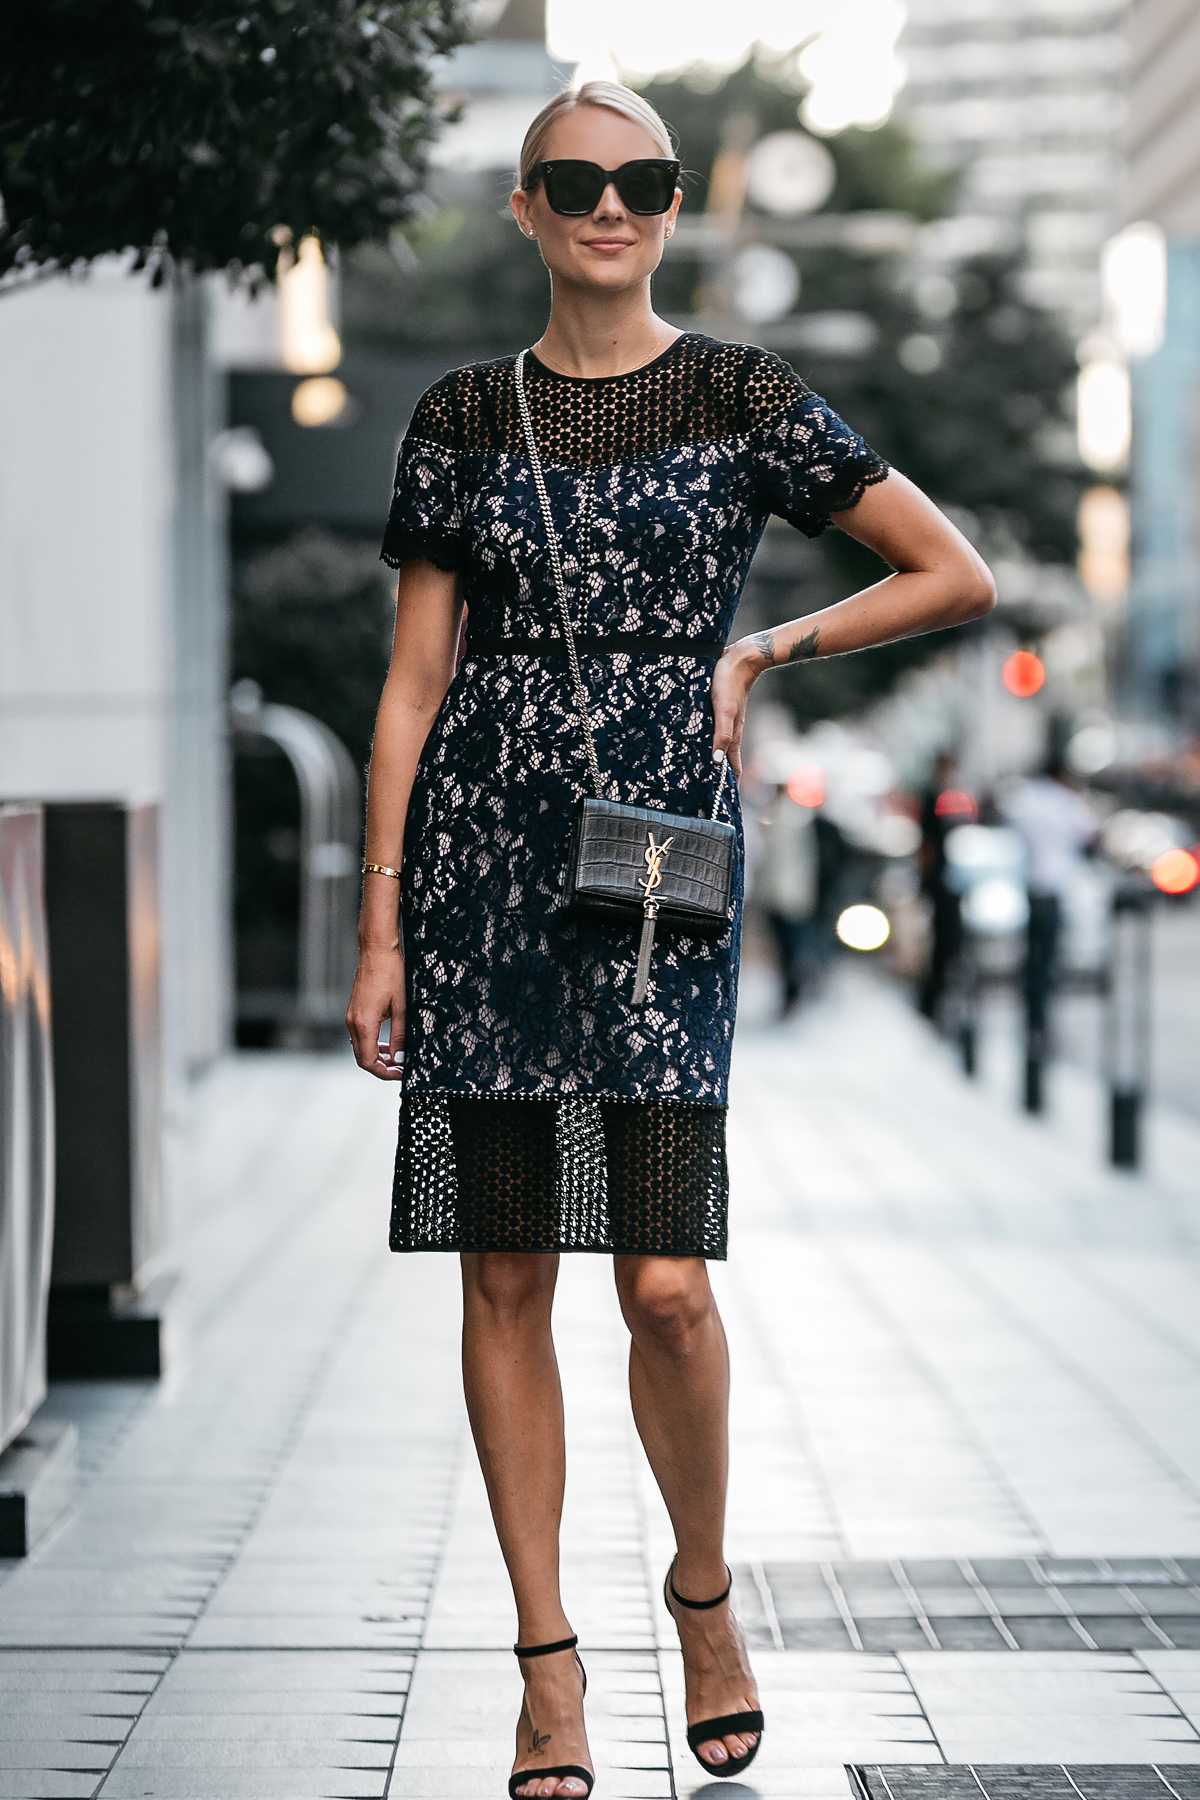 Blonde Woman Wearing Club Monaco Black Navy Lace Dress YSL Black Monogram Tassel Clutch Black Ankle Strap Heeled Sandals Fashion Jackson Dallas Blogger Fashion Blogger Street Style